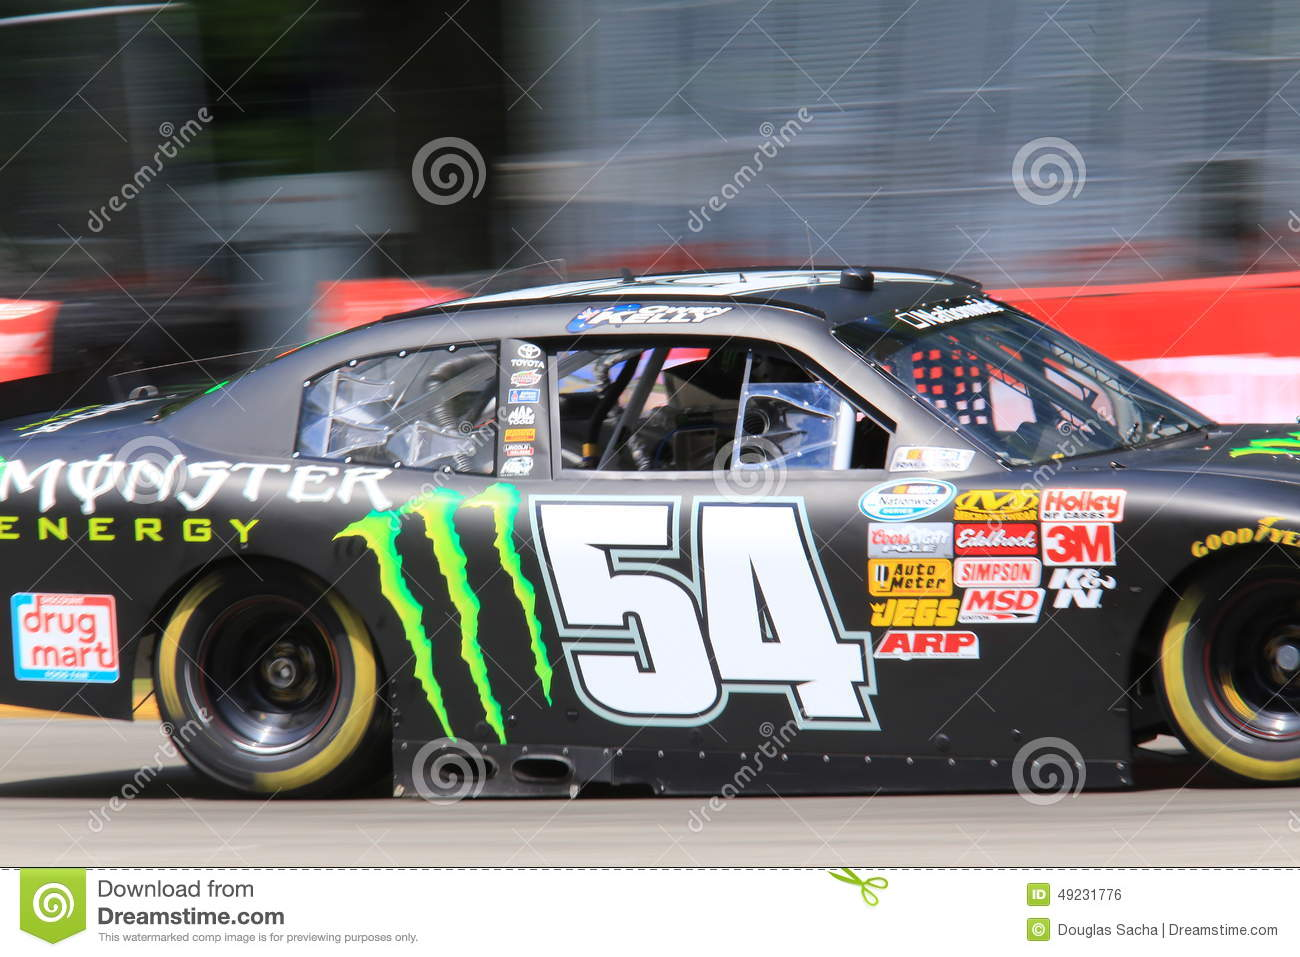 Who Drives The M M Car In Nascar